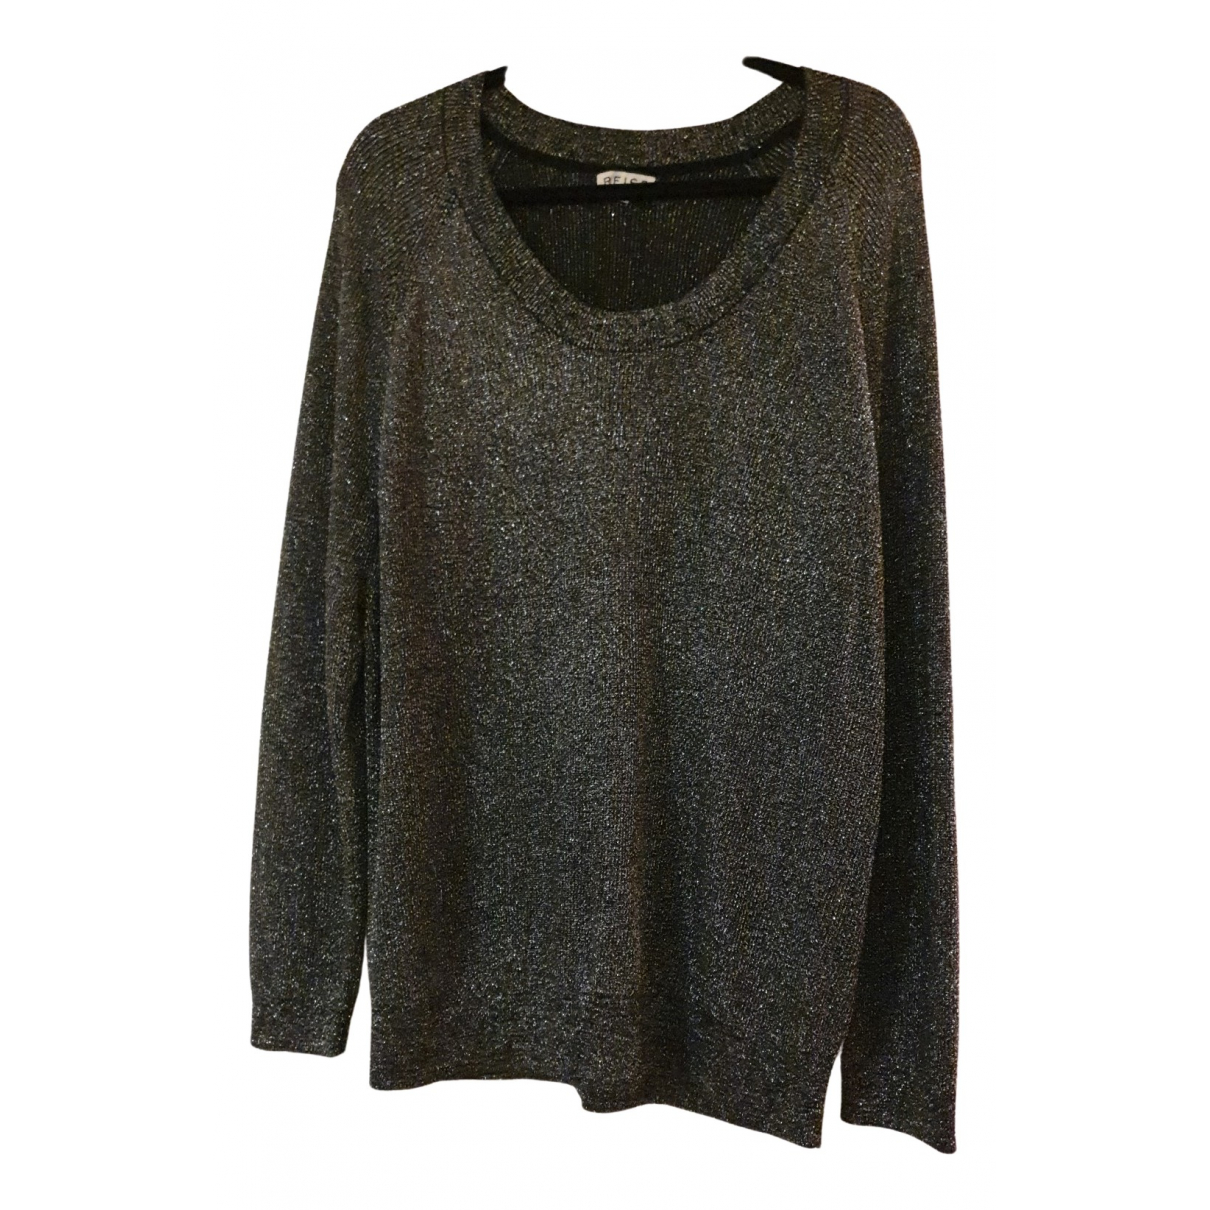 Reiss N Metallic Knitwear for Women L International